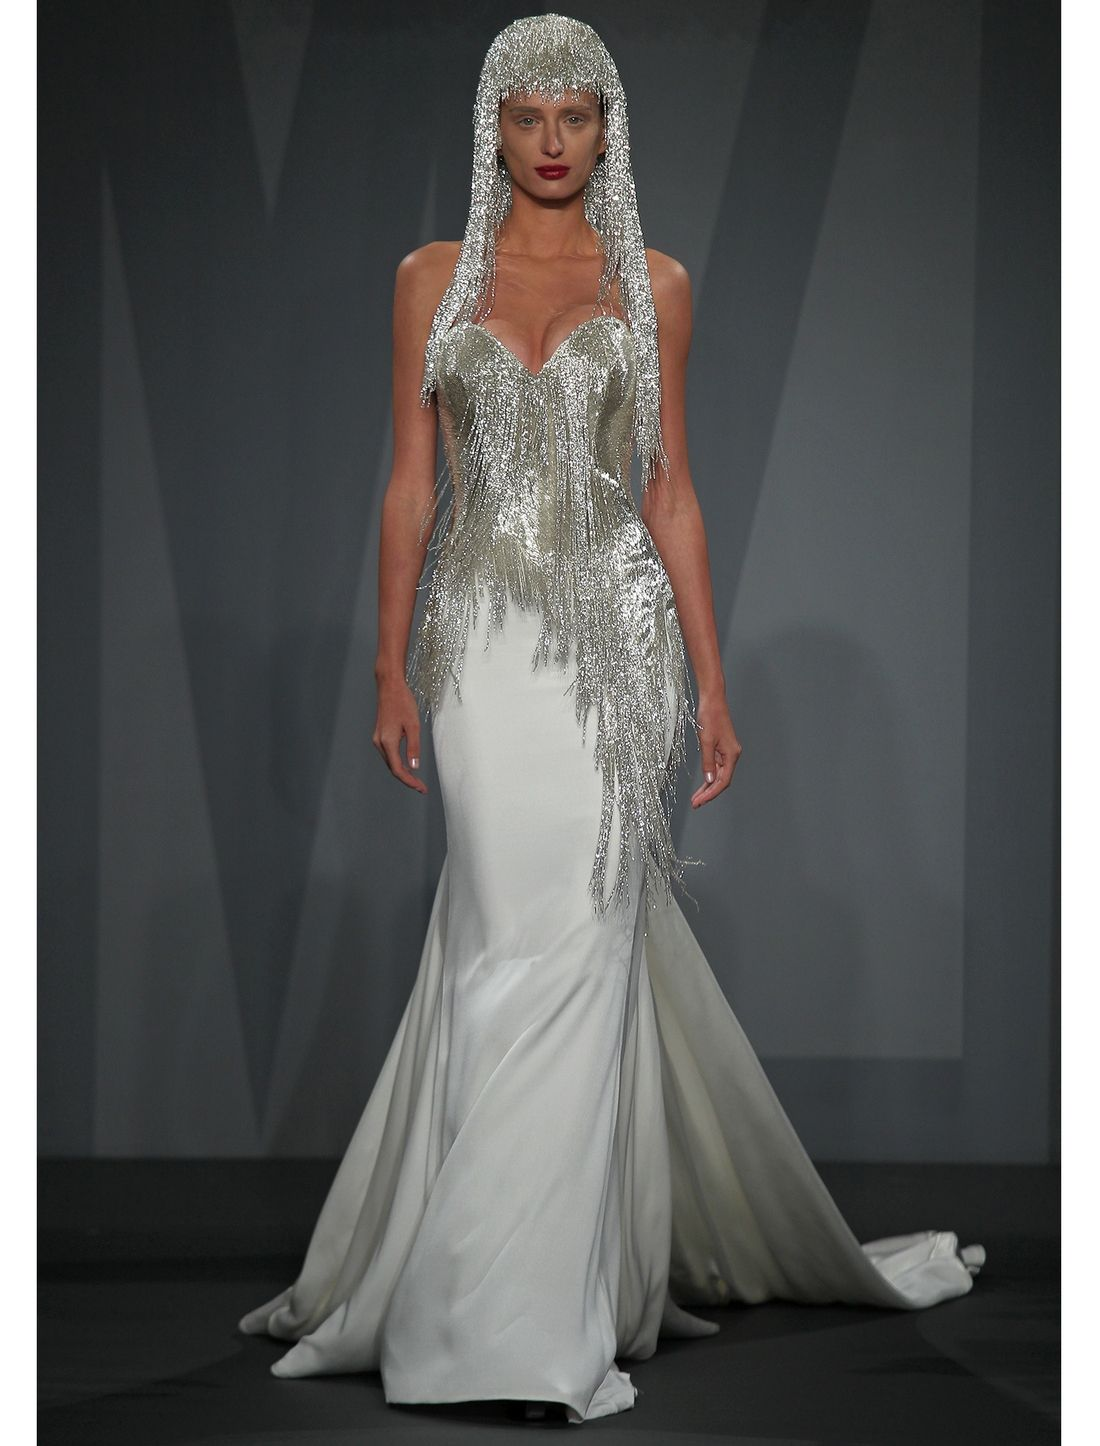 Mark zunino wedding dresses  Mark Zunino  Style    This is so unique I donut know that